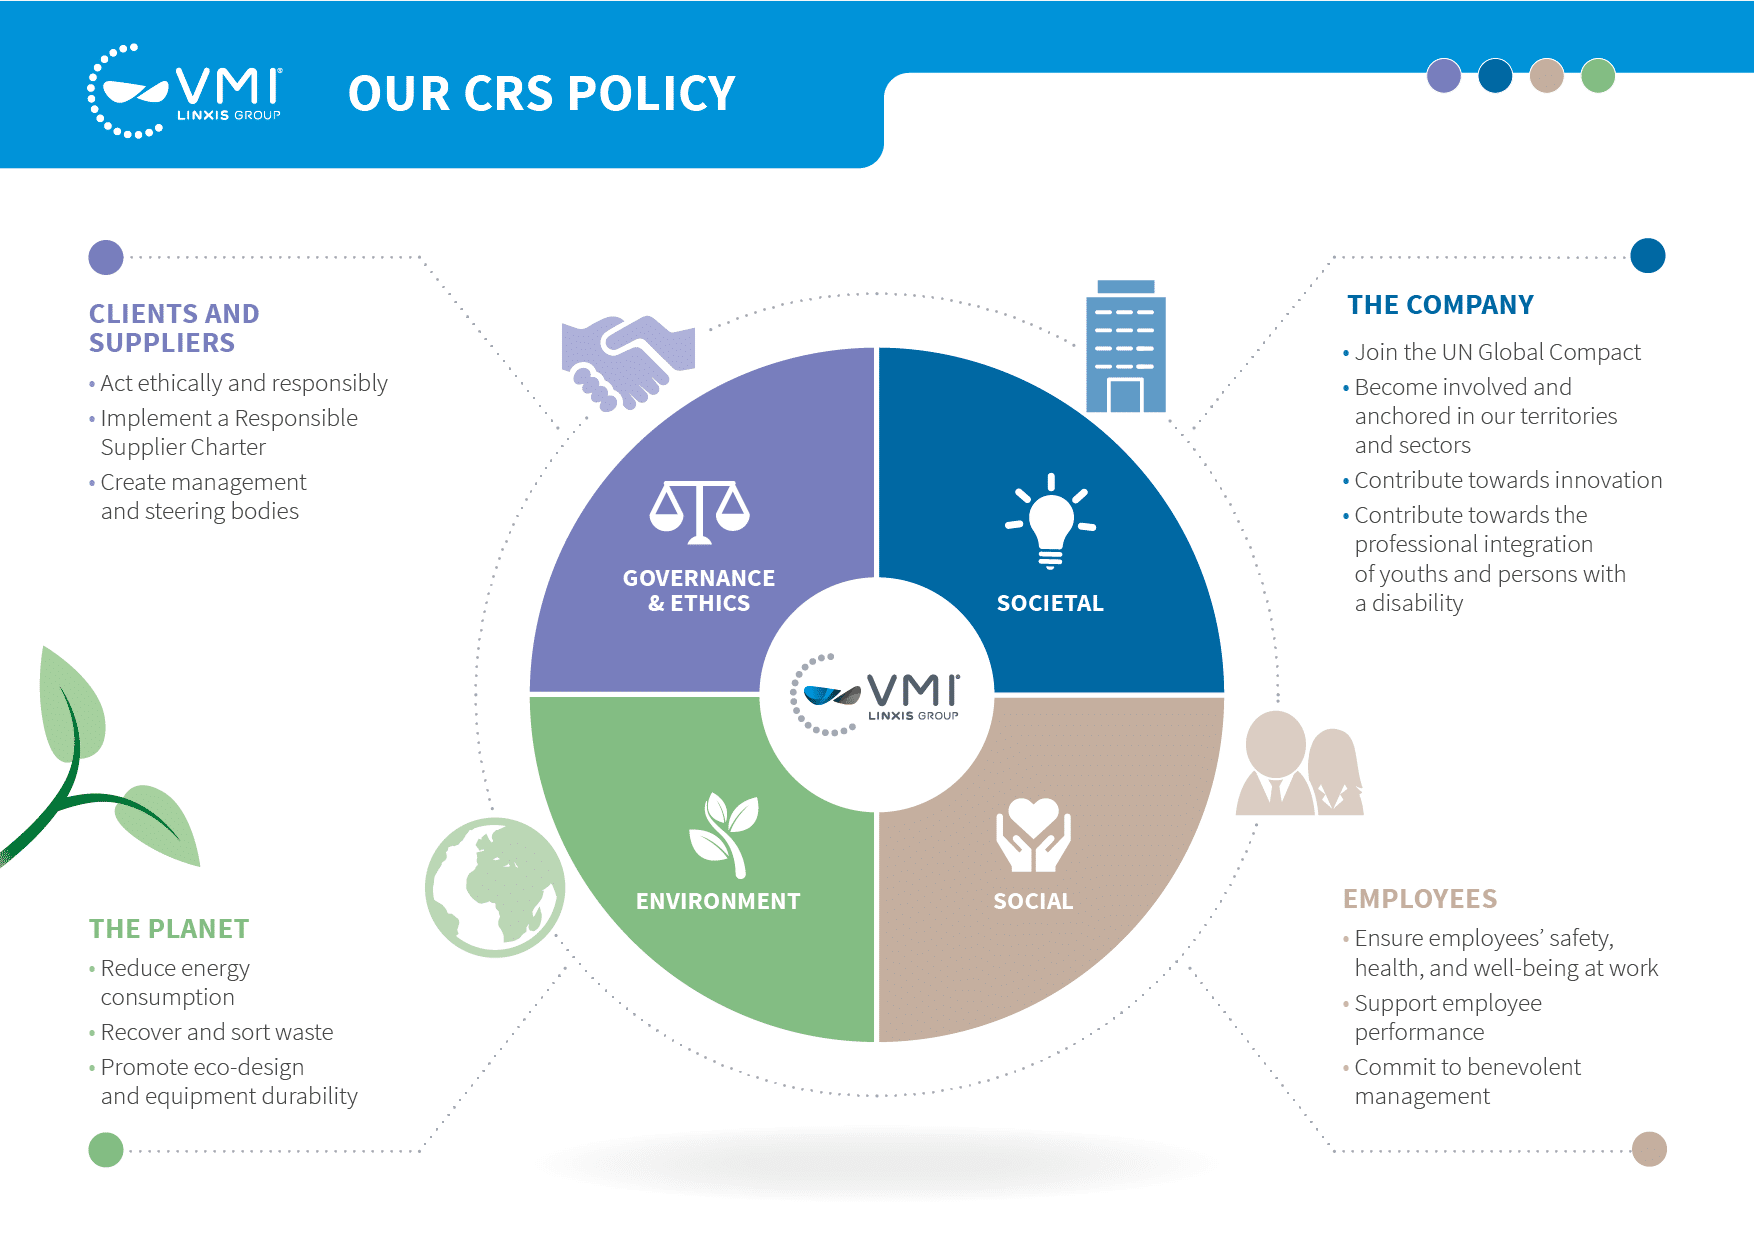 VMI CRS policy